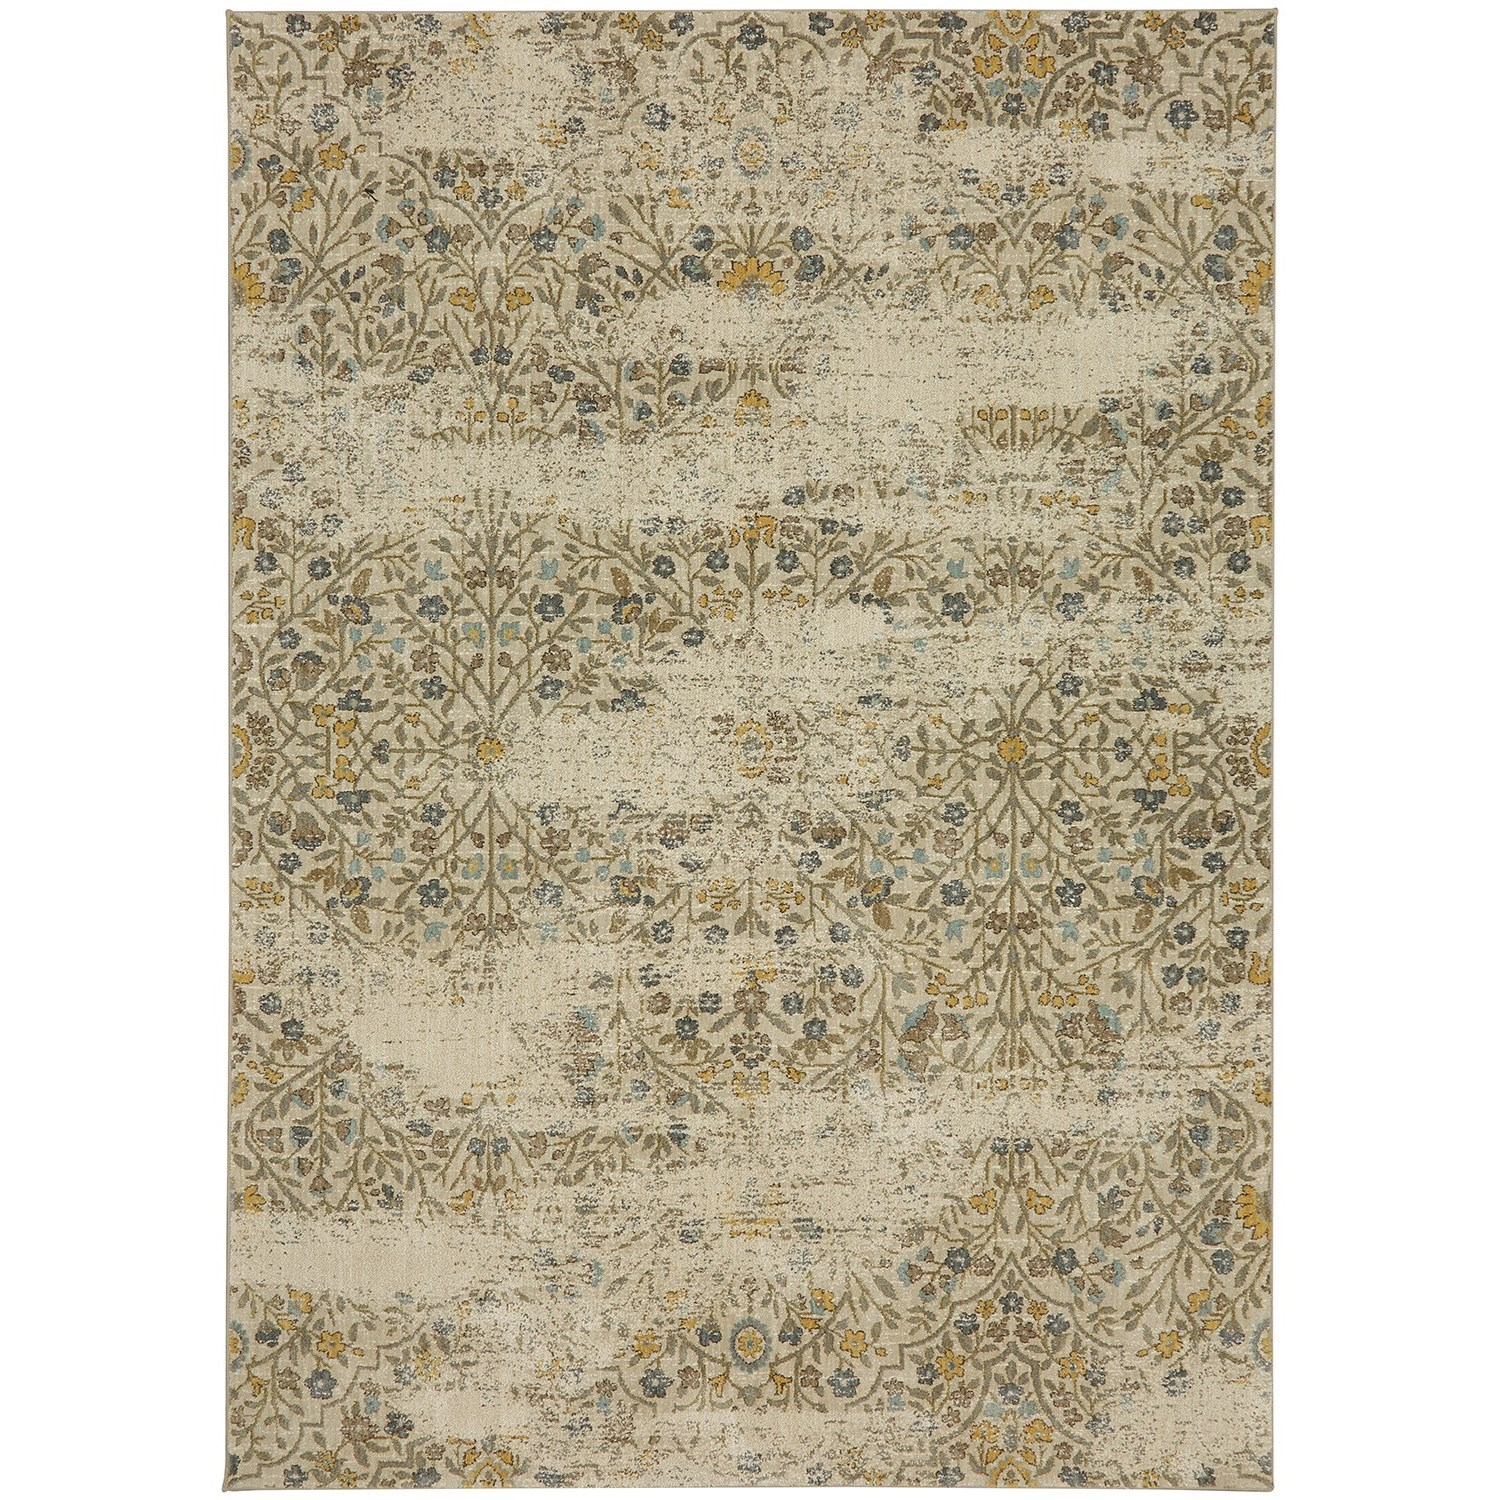 """Touchstone 9' 6""""x12' 11"""" Rectangle Floral Area Rug by Karastan Rugs at Darvin Furniture"""